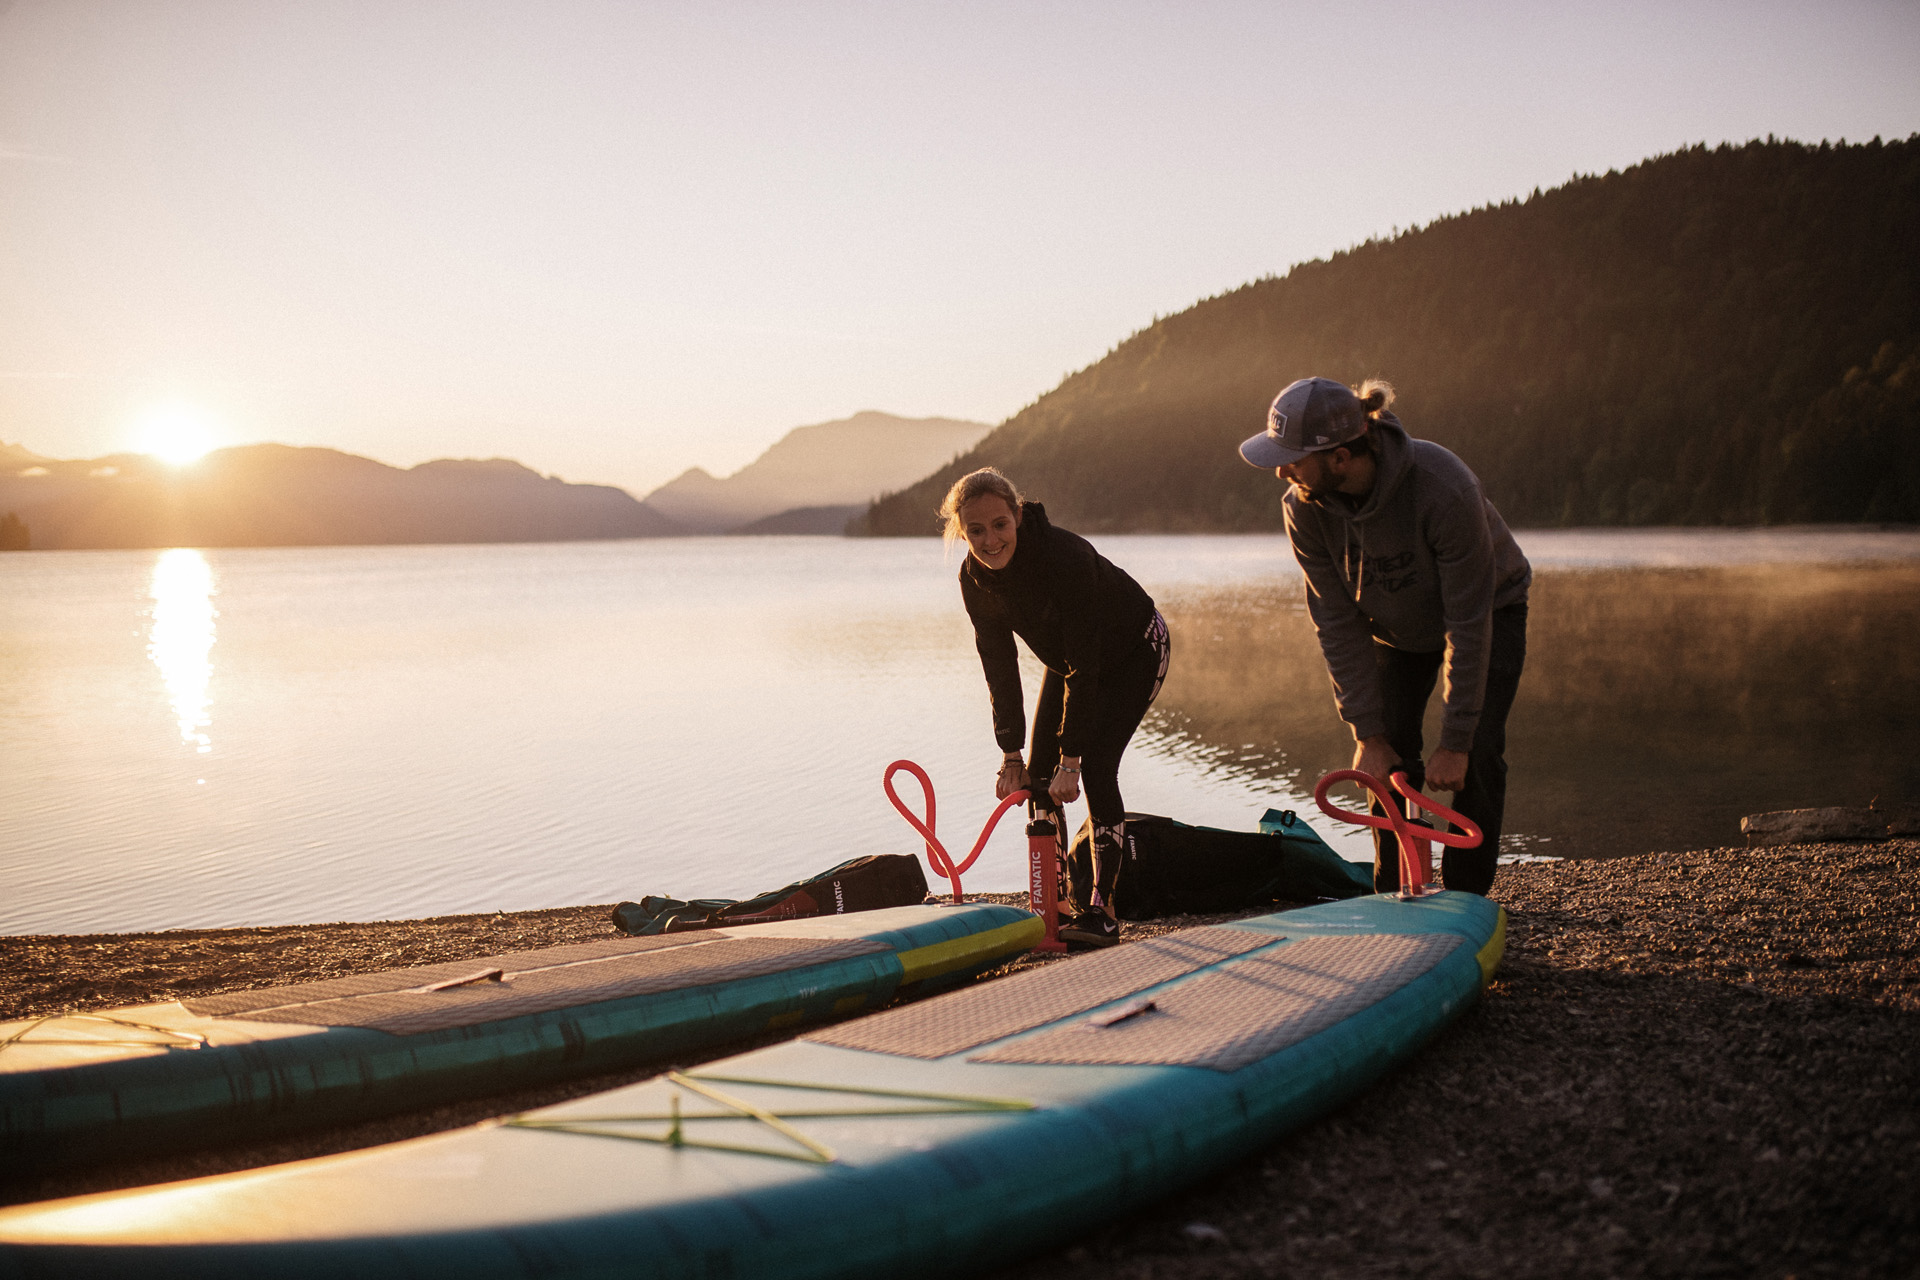 A man and a woman inflating stand up paddleboards near a mountain lake